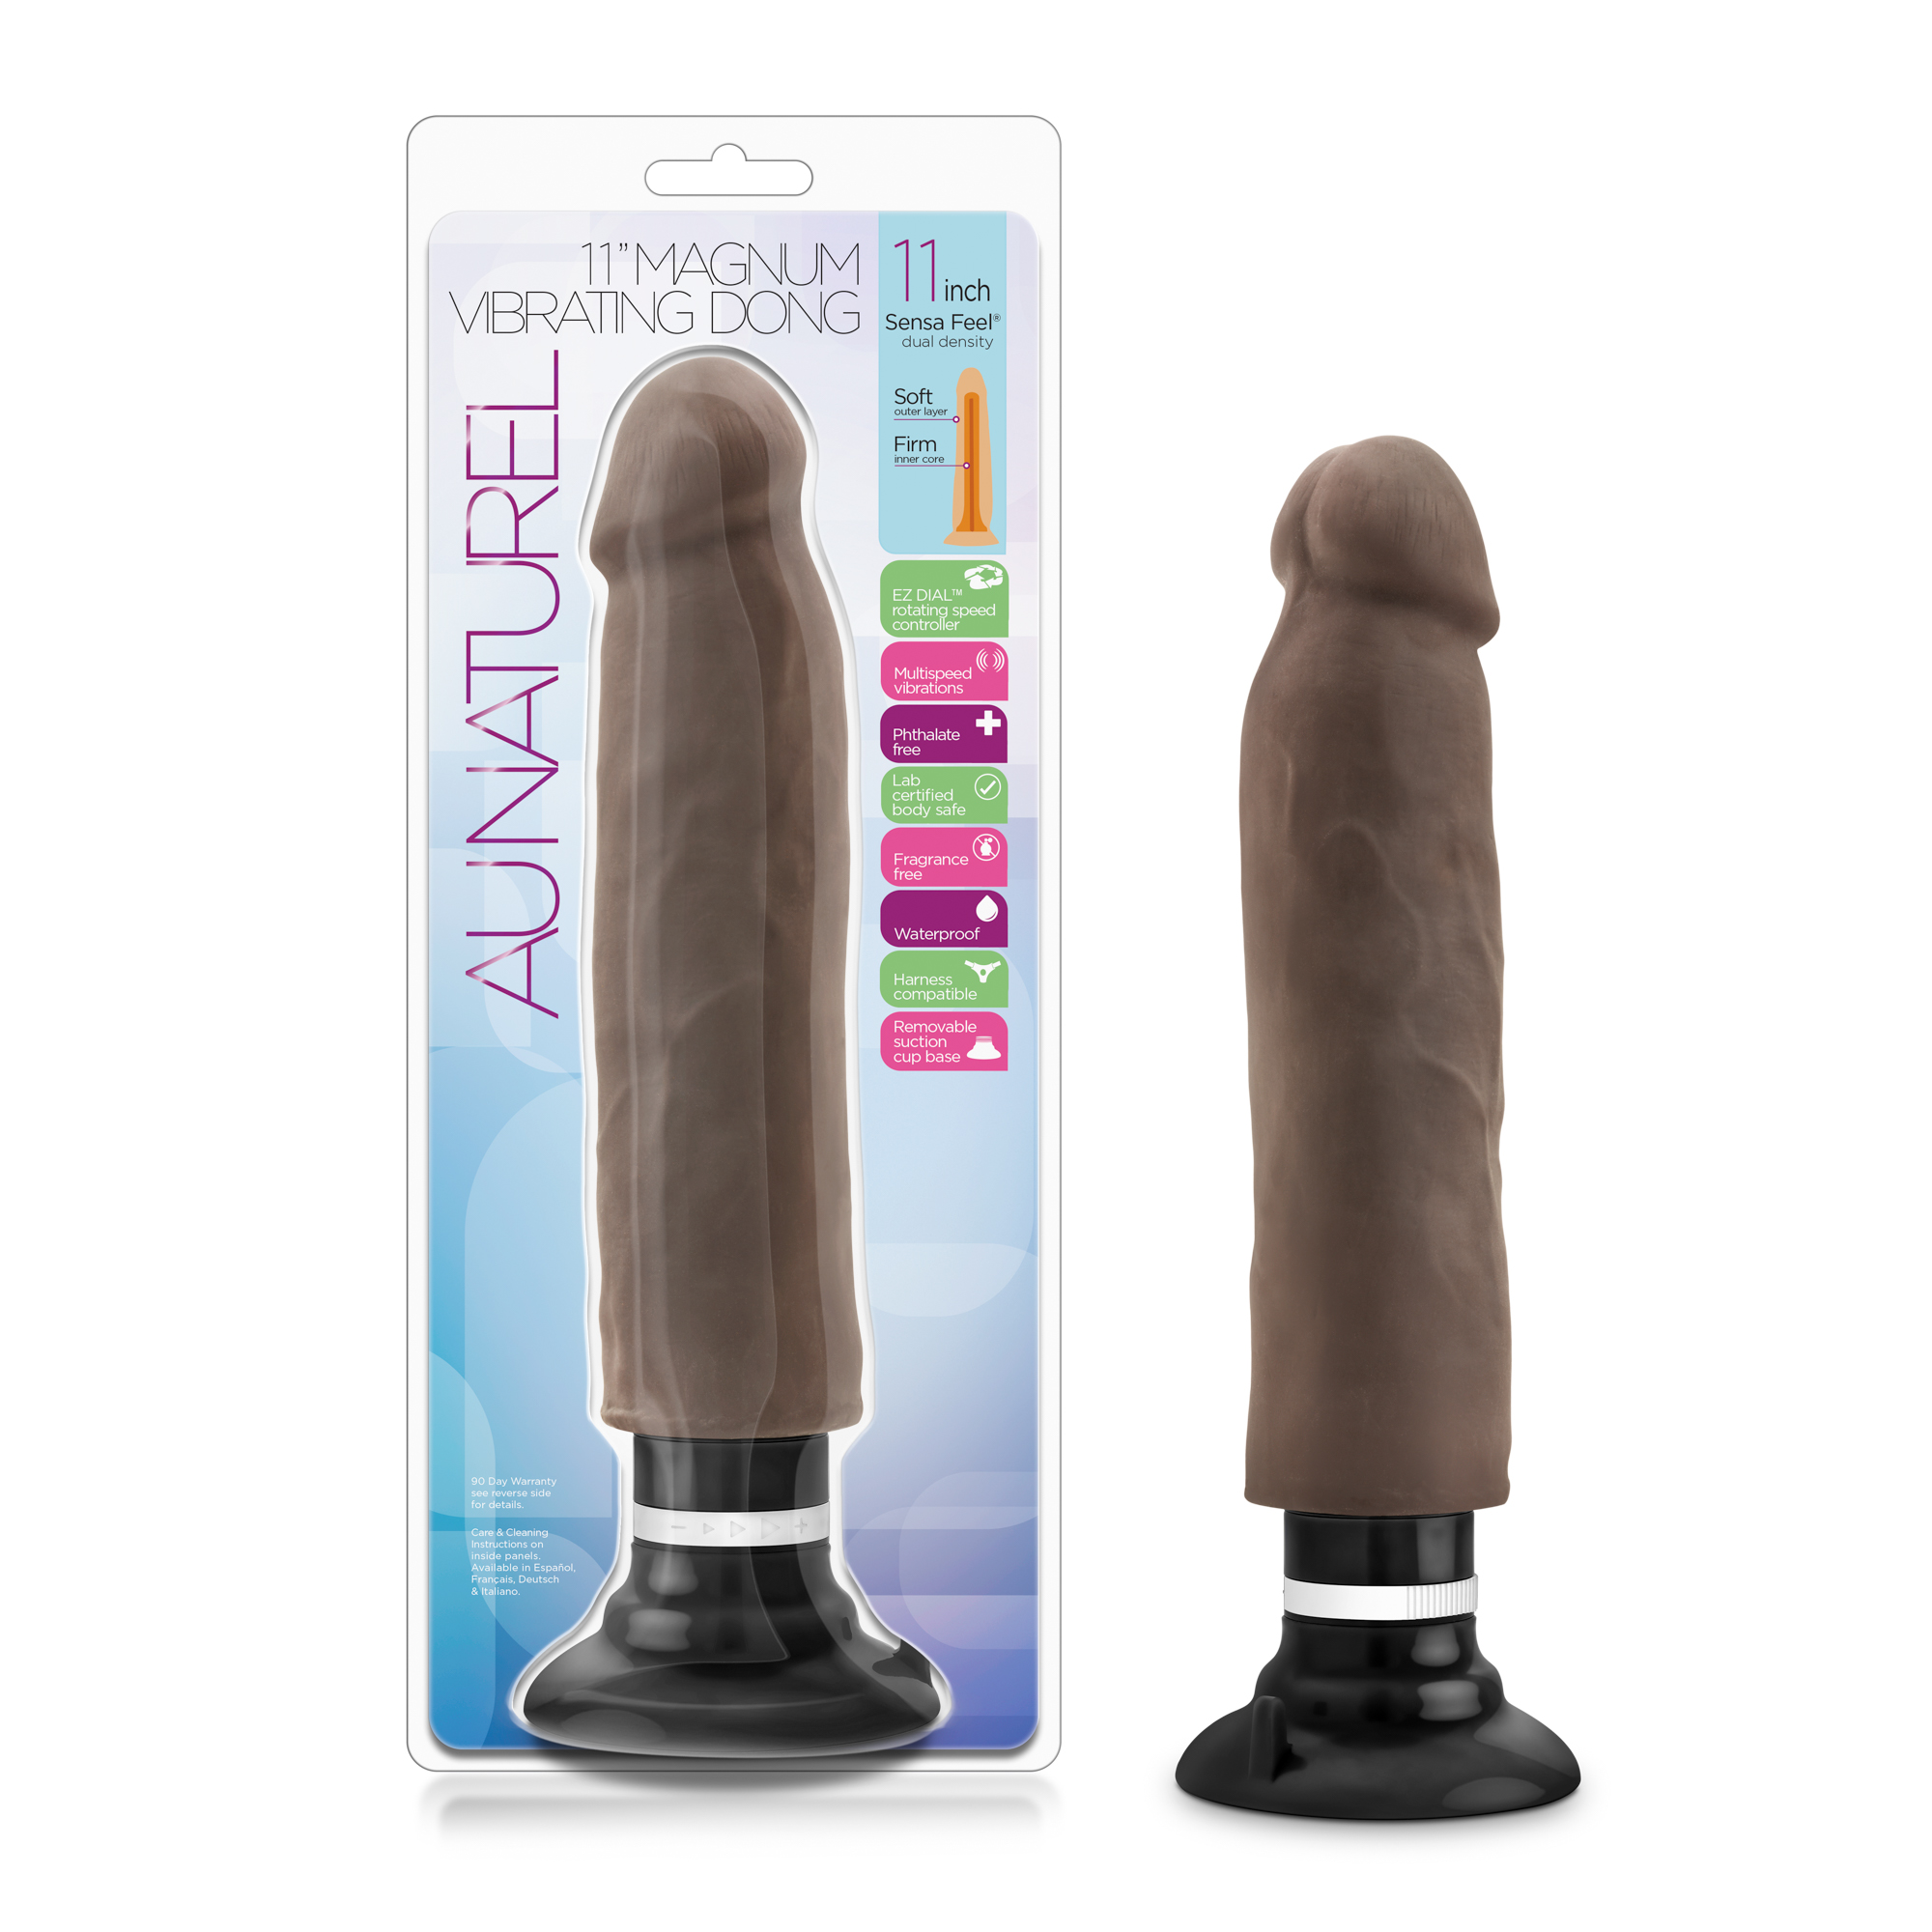 Au Naturel - 11 inch Sensa Feel Magnum Vibrating Dong - Chocolate